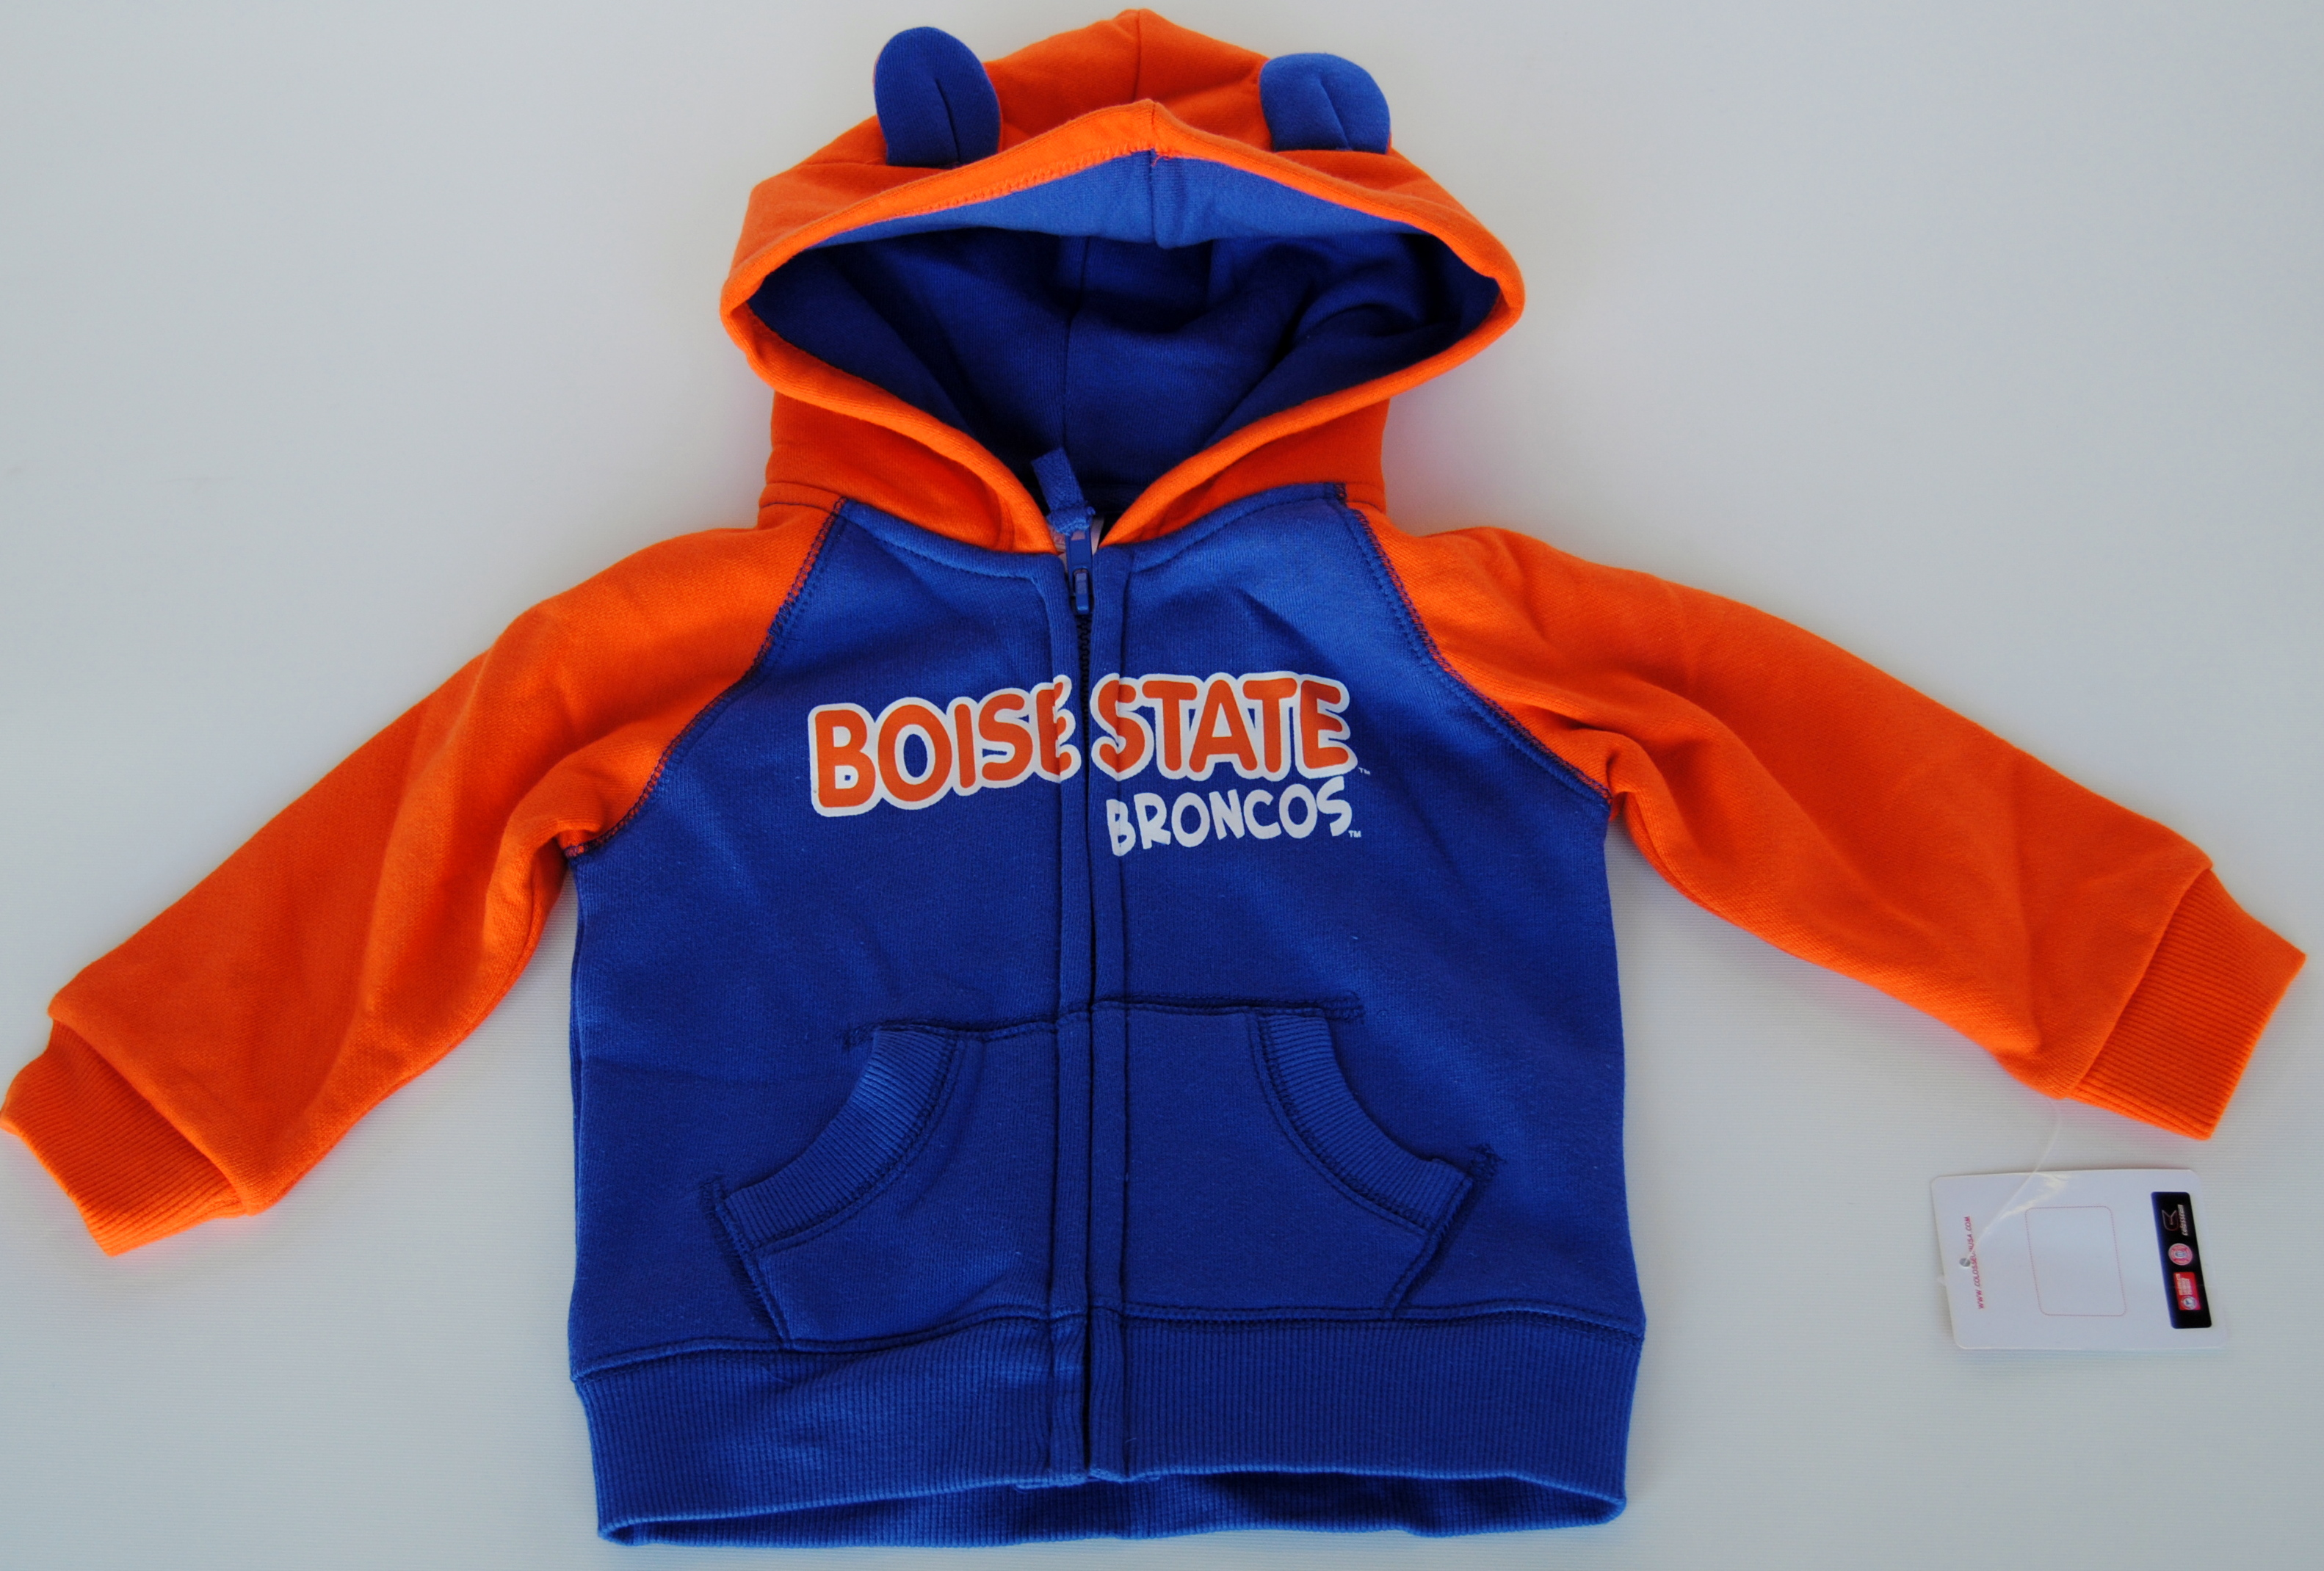 Colosseum Athletics Boise State Broncos Colosseum Blue Orange Infant Zip Hooded Sweatshirt (6-12M) at Sears.com